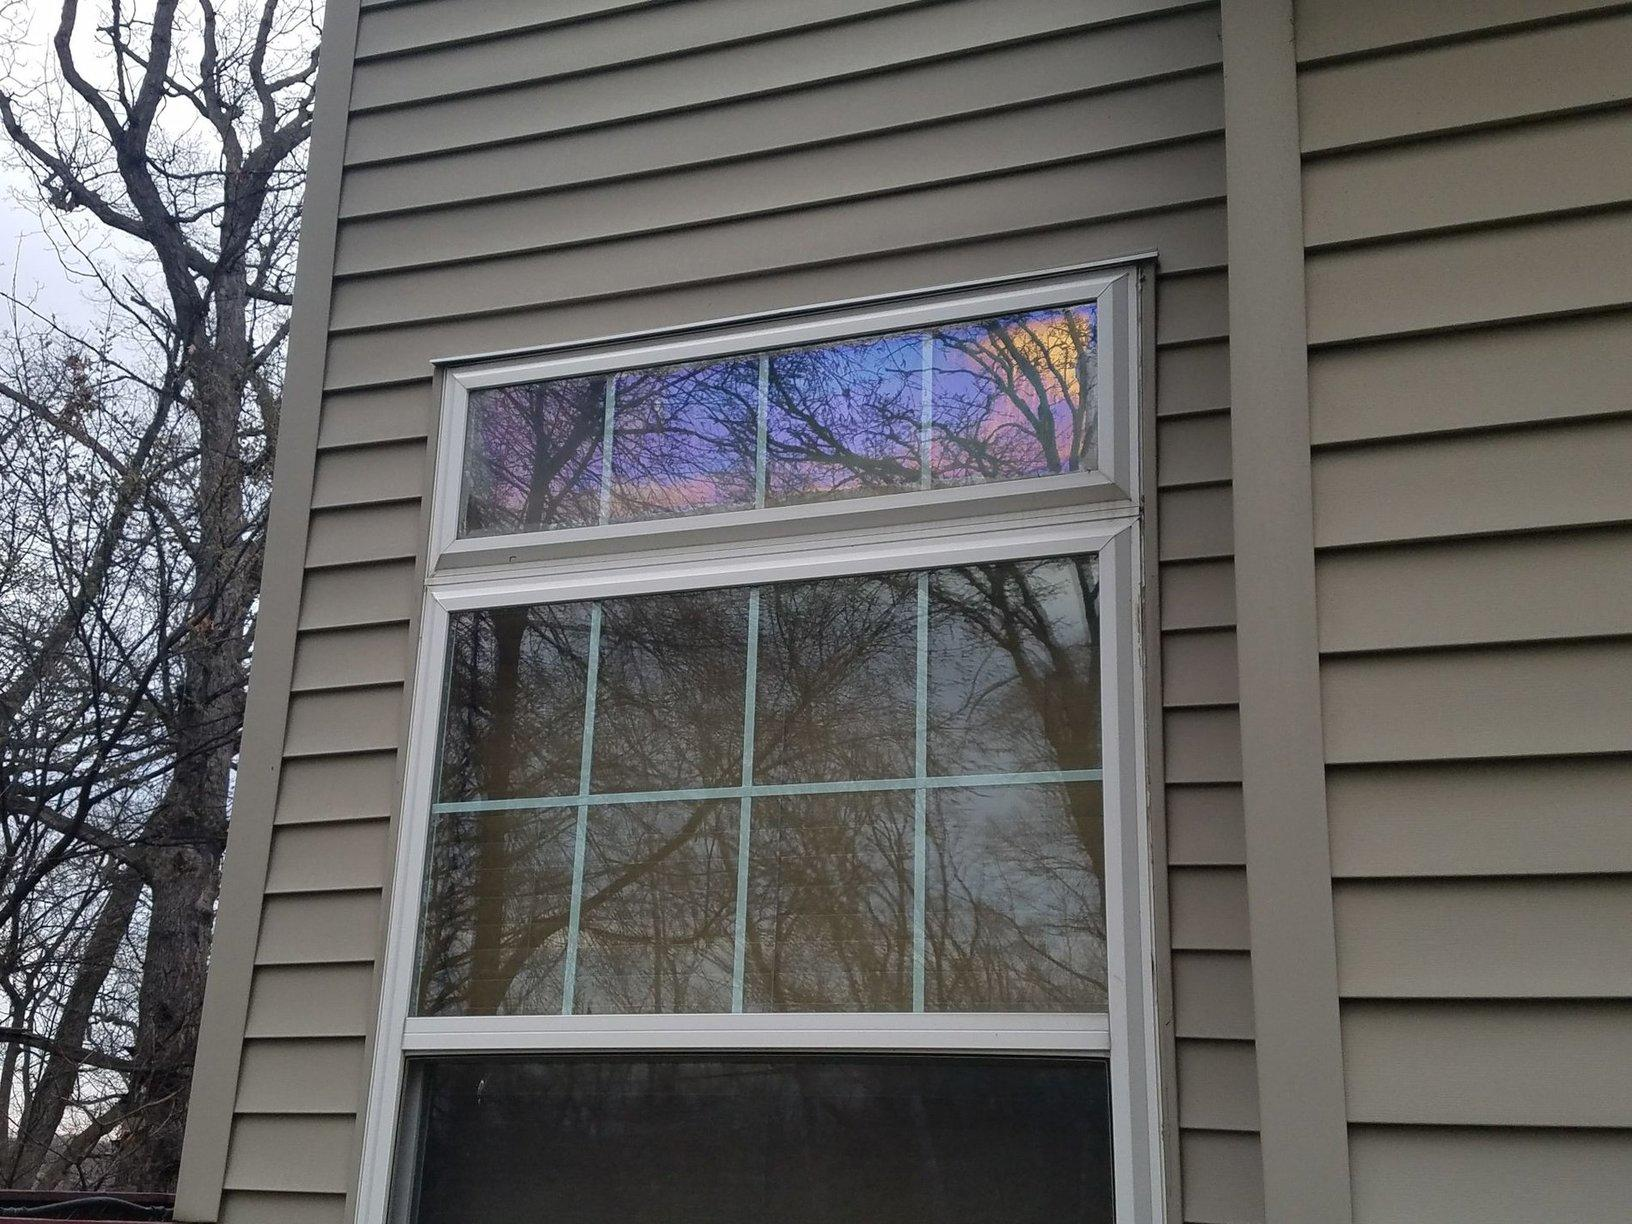 New Siding & Window Wrap in Inver Grove Heights